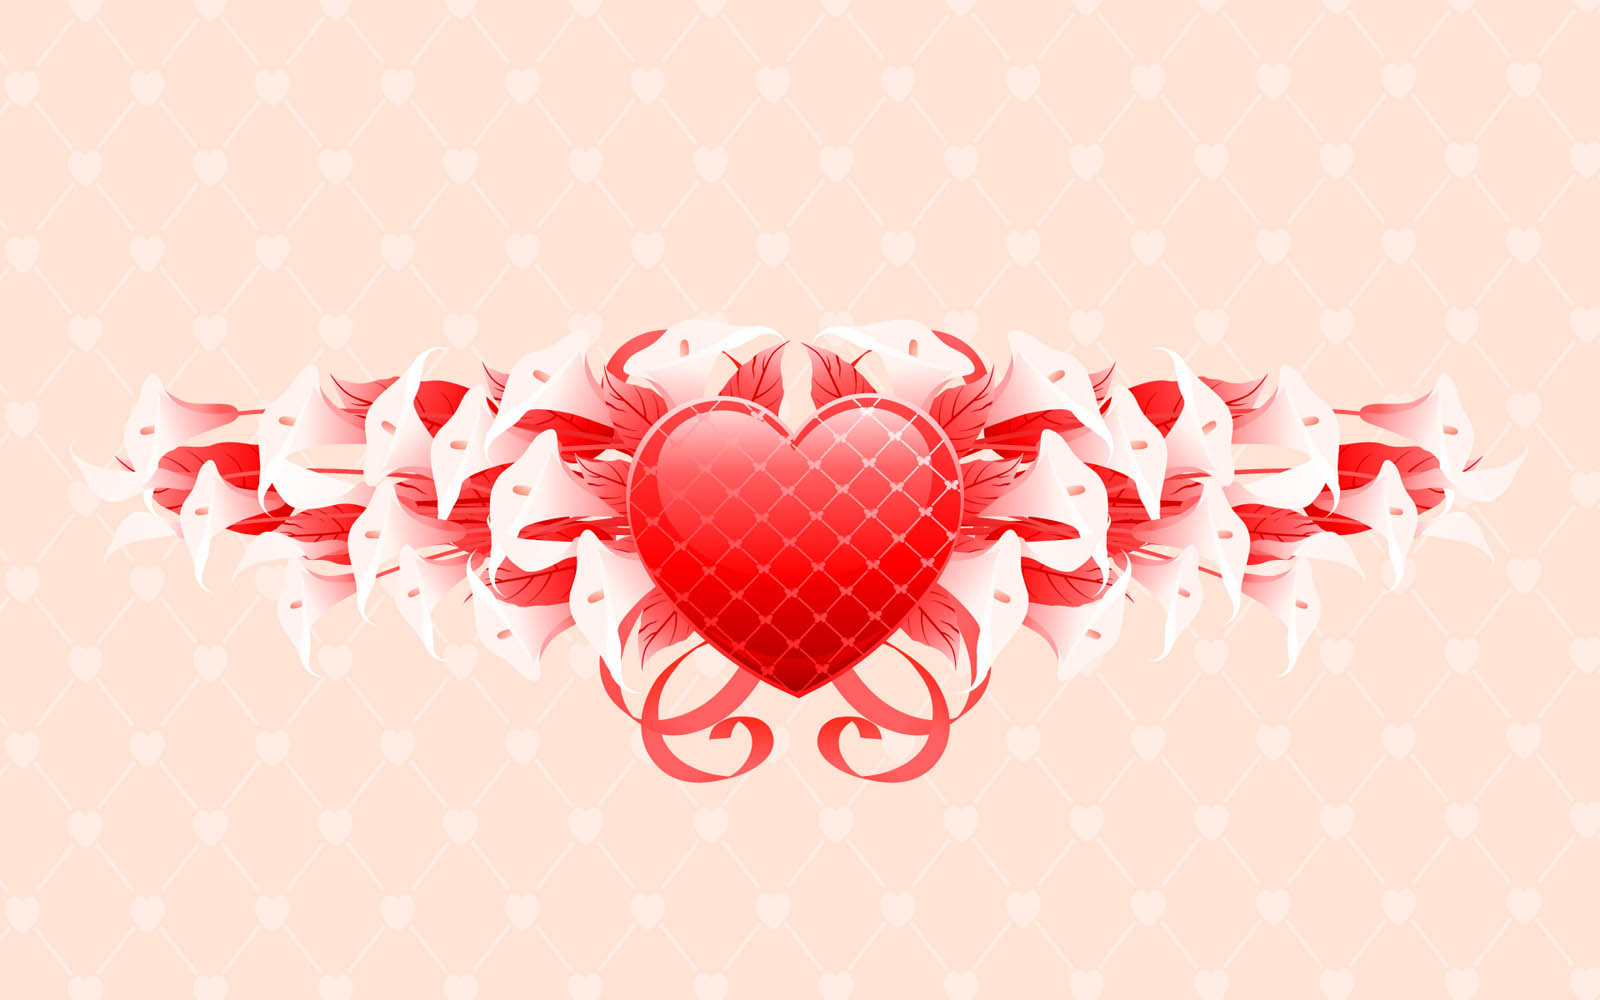 Love Wallpaper Jd : wallpapers: Vector Love Wallpapers